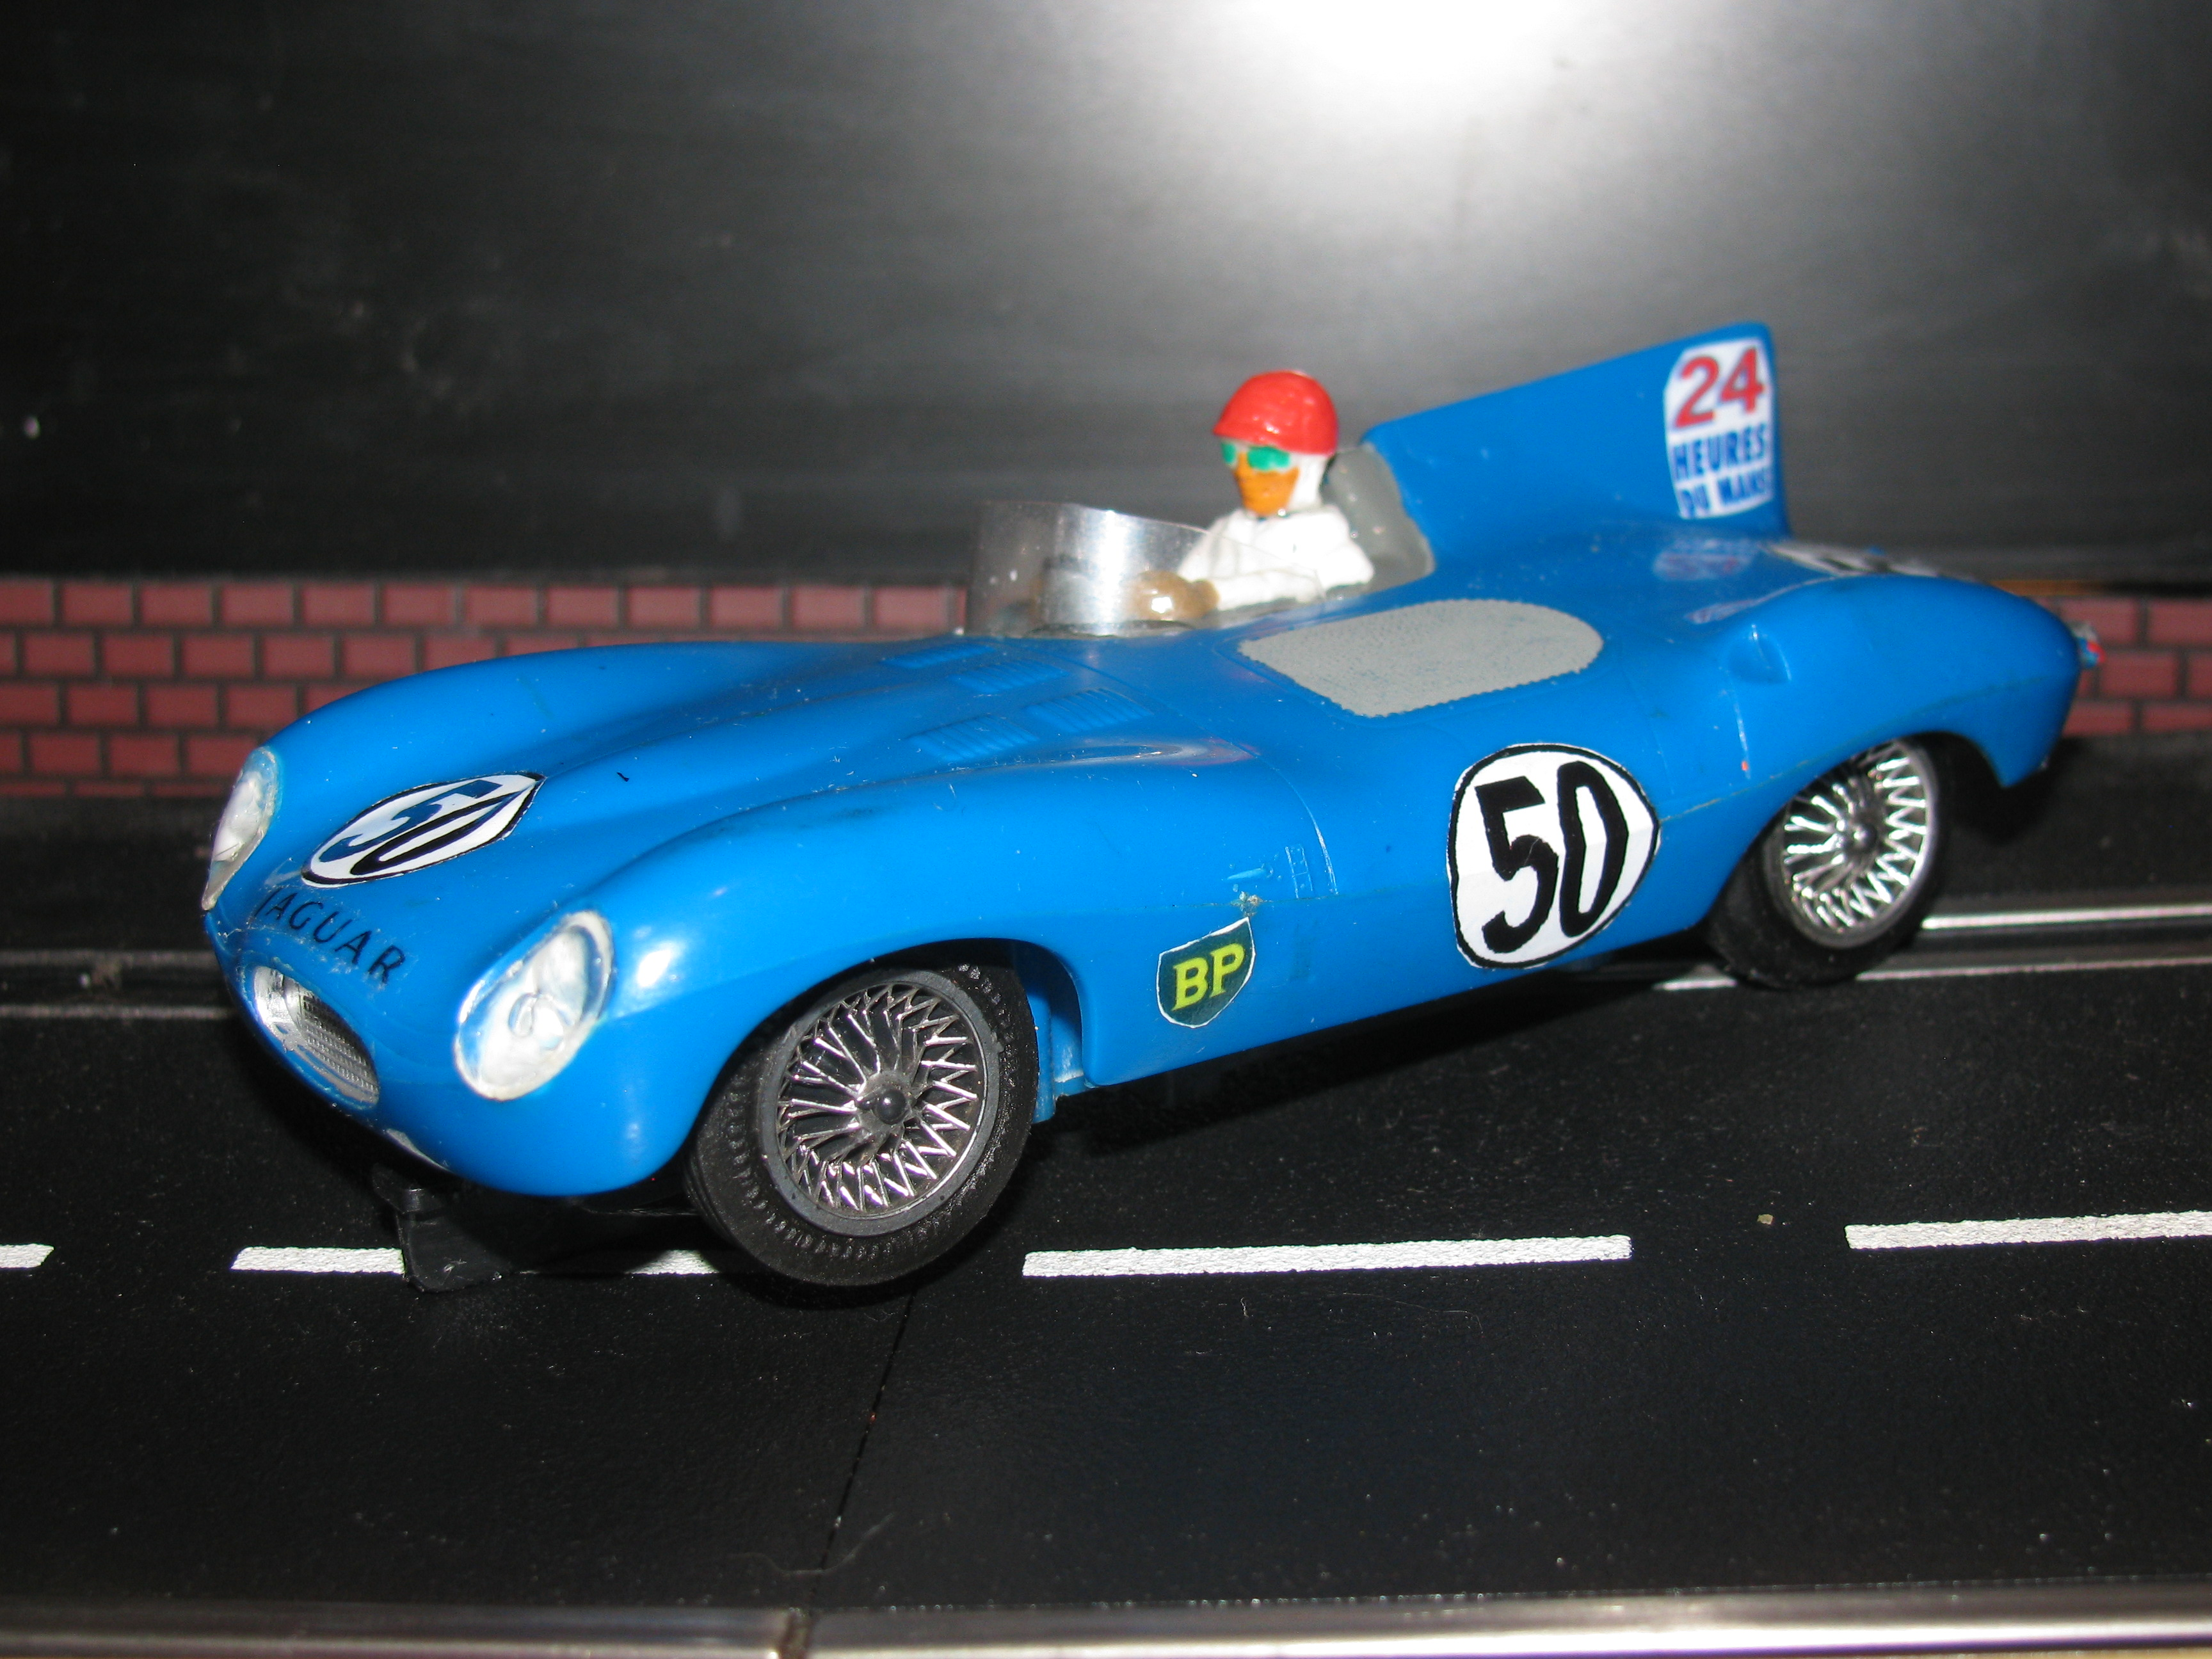 * SOLD * Vintage Eldon Jaguar D-Type Slot Car 1/32 Scale – Blue Car #50